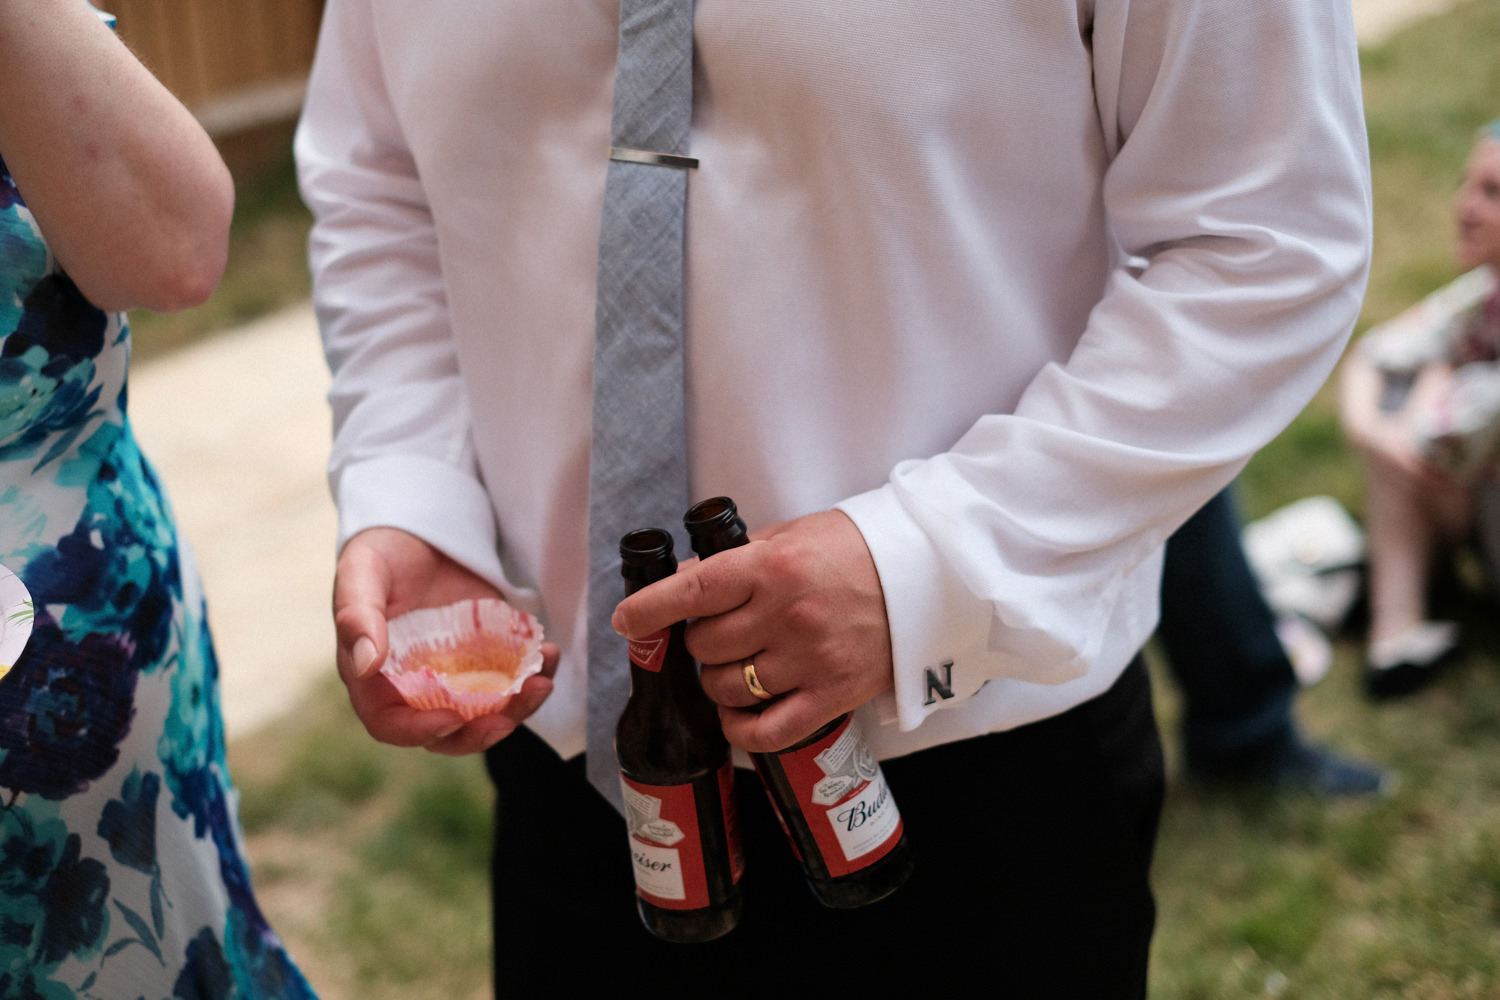 059-detail-photo-of-cufflinks-carrying-beer.jpg